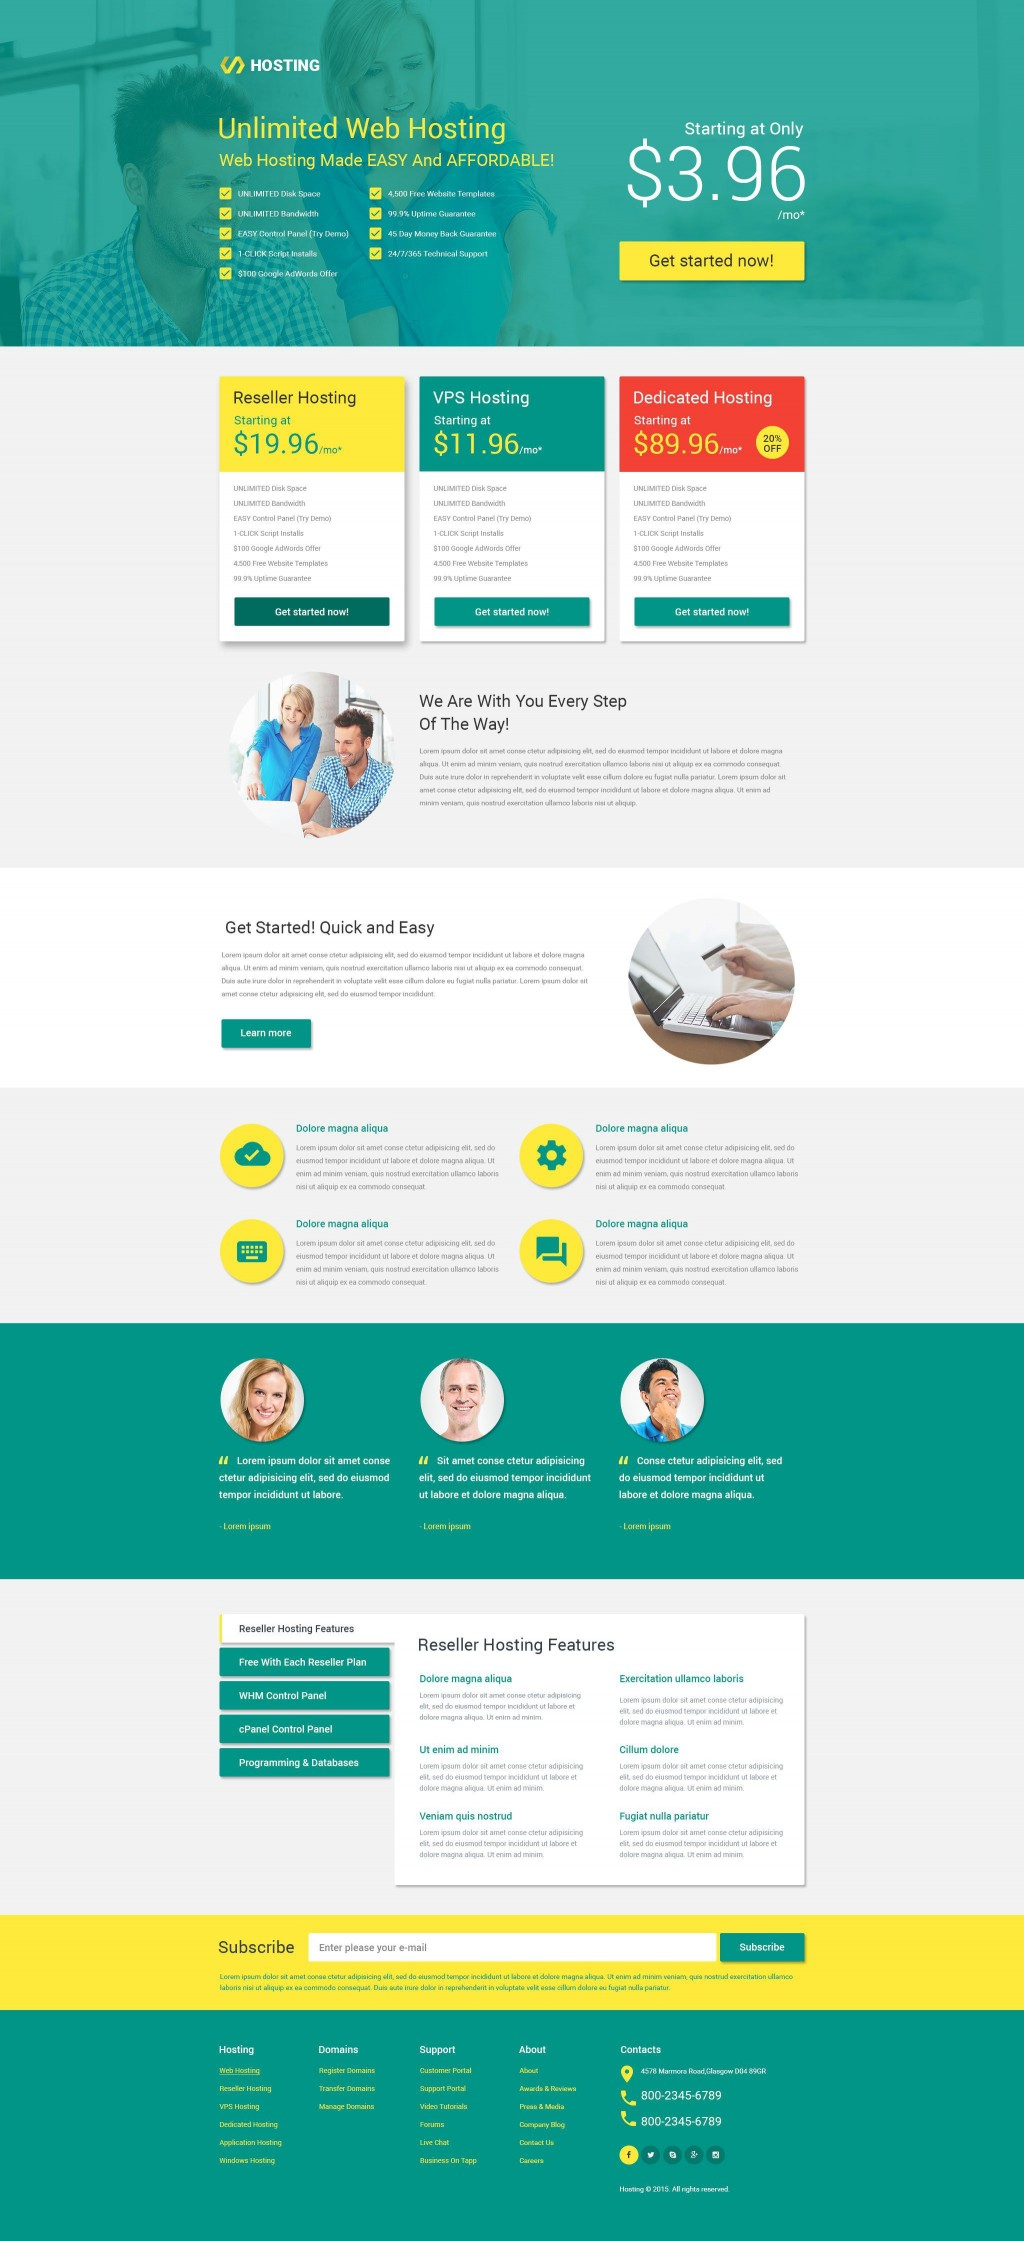 001 Dreaded Responsive Landing Page Template Example  Templates Marketo Free Pardot Html5 DownloadLarge